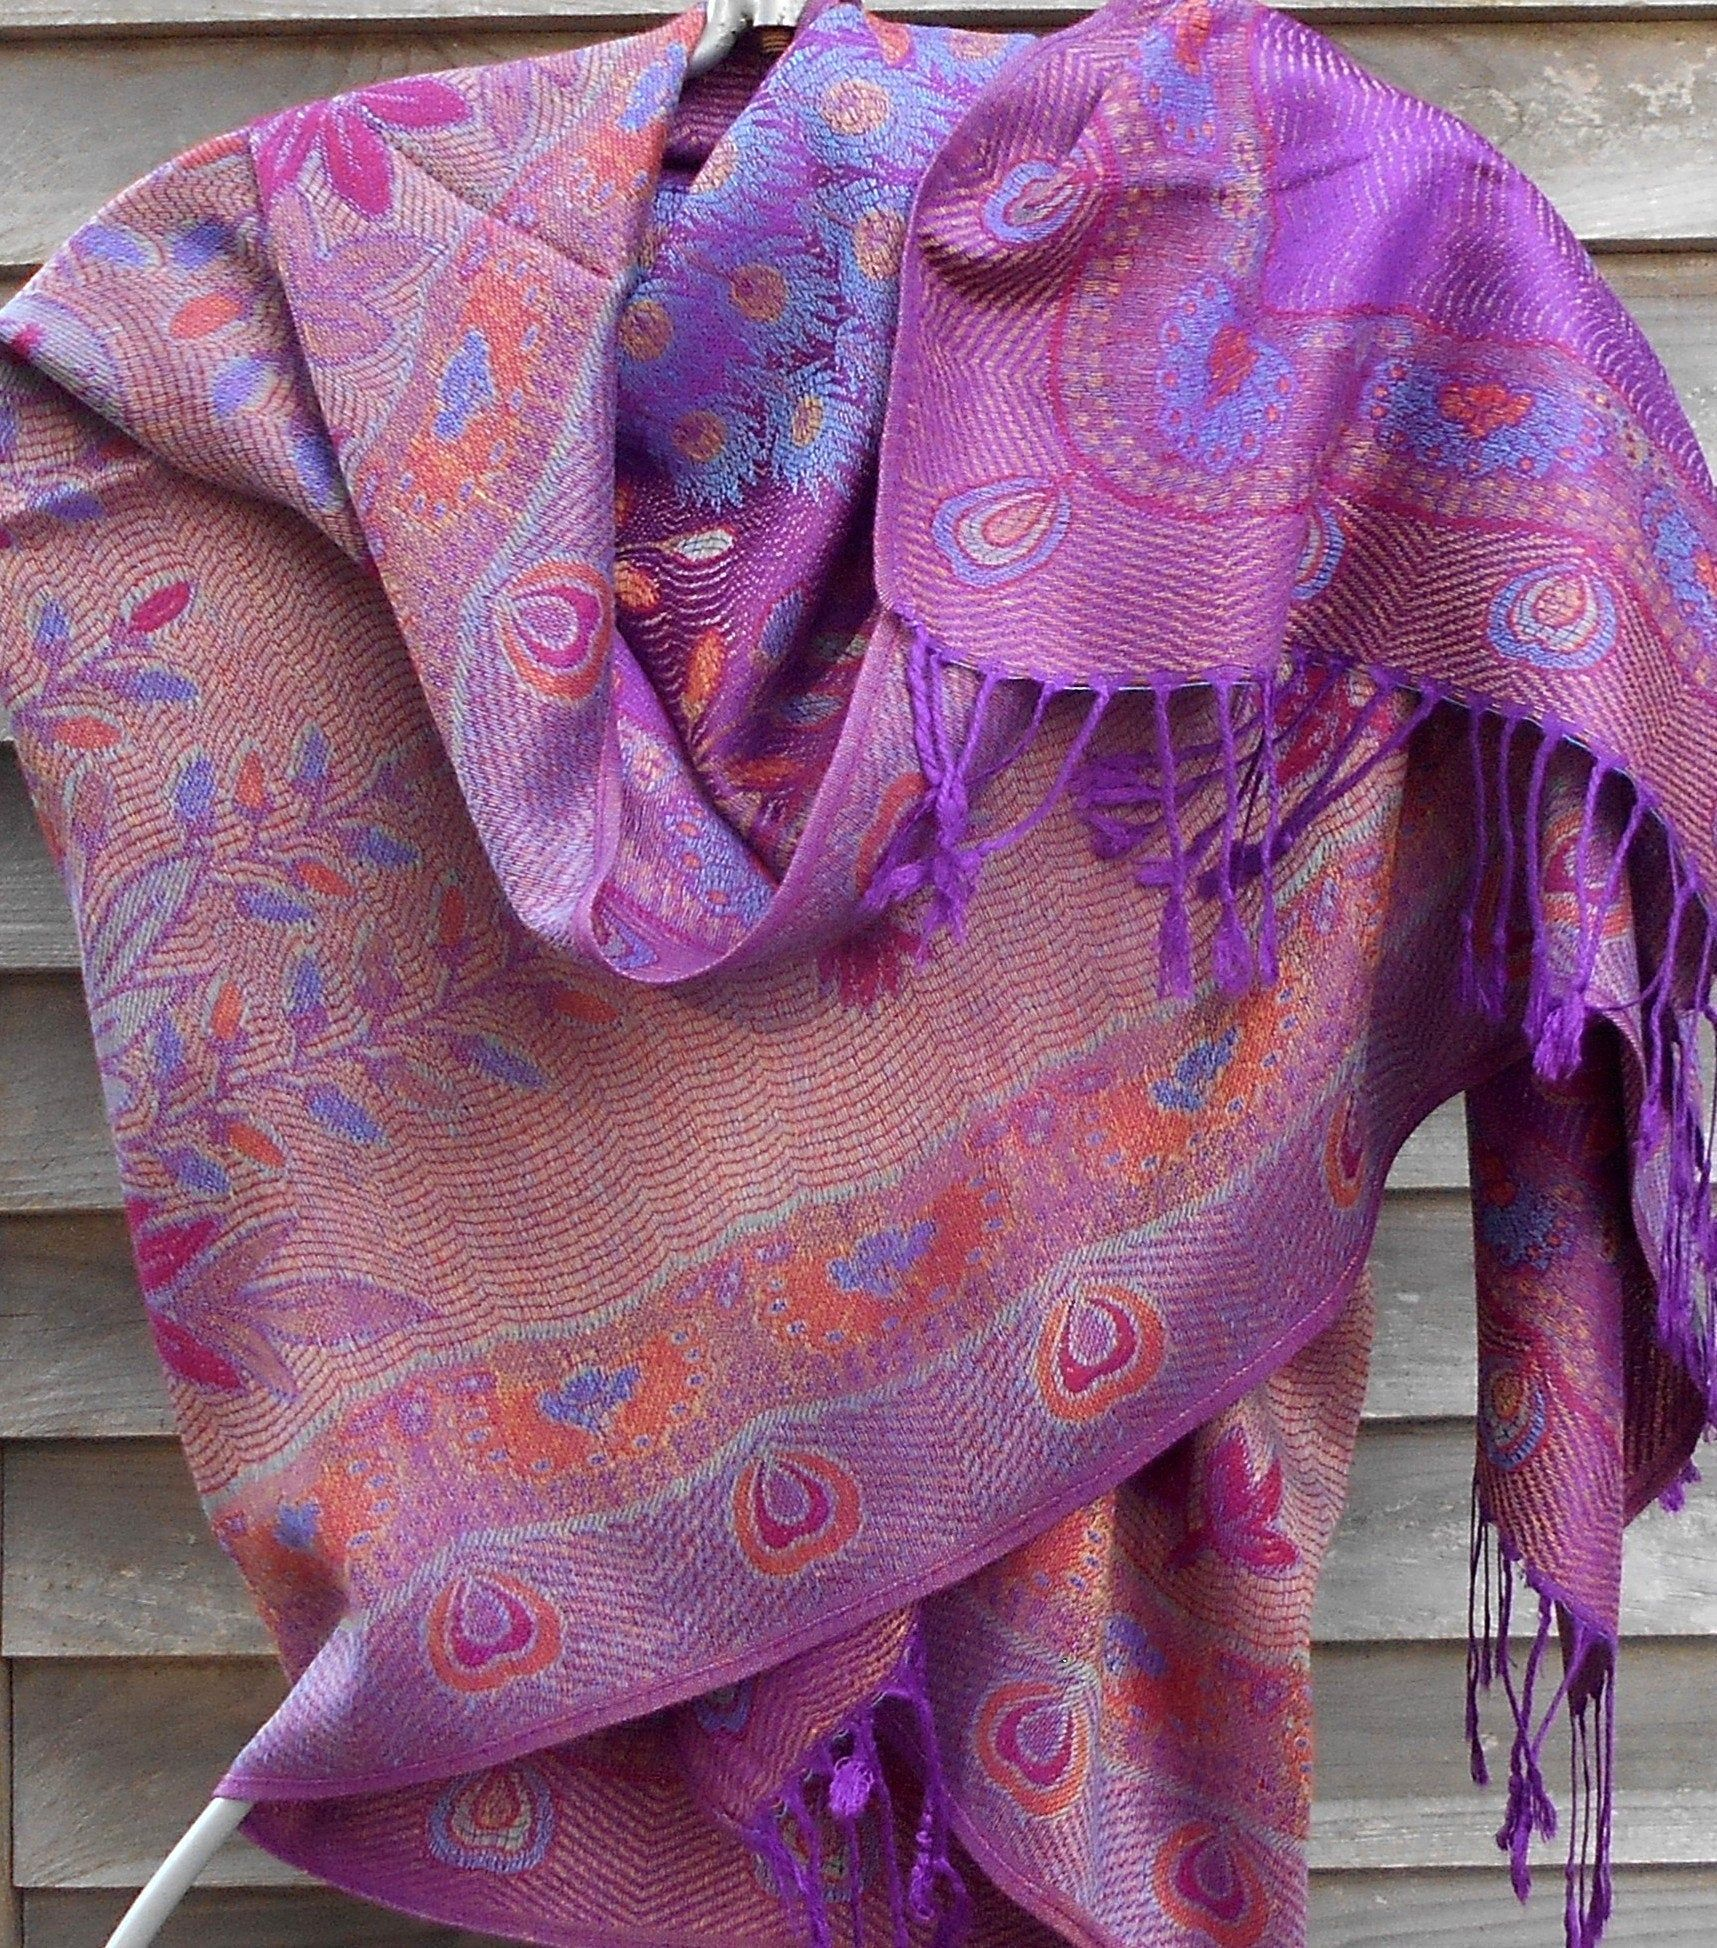 Shawls Scarves Hijab Palestine Scarf Wrap Cover-Up Woven Reversible Lightweight